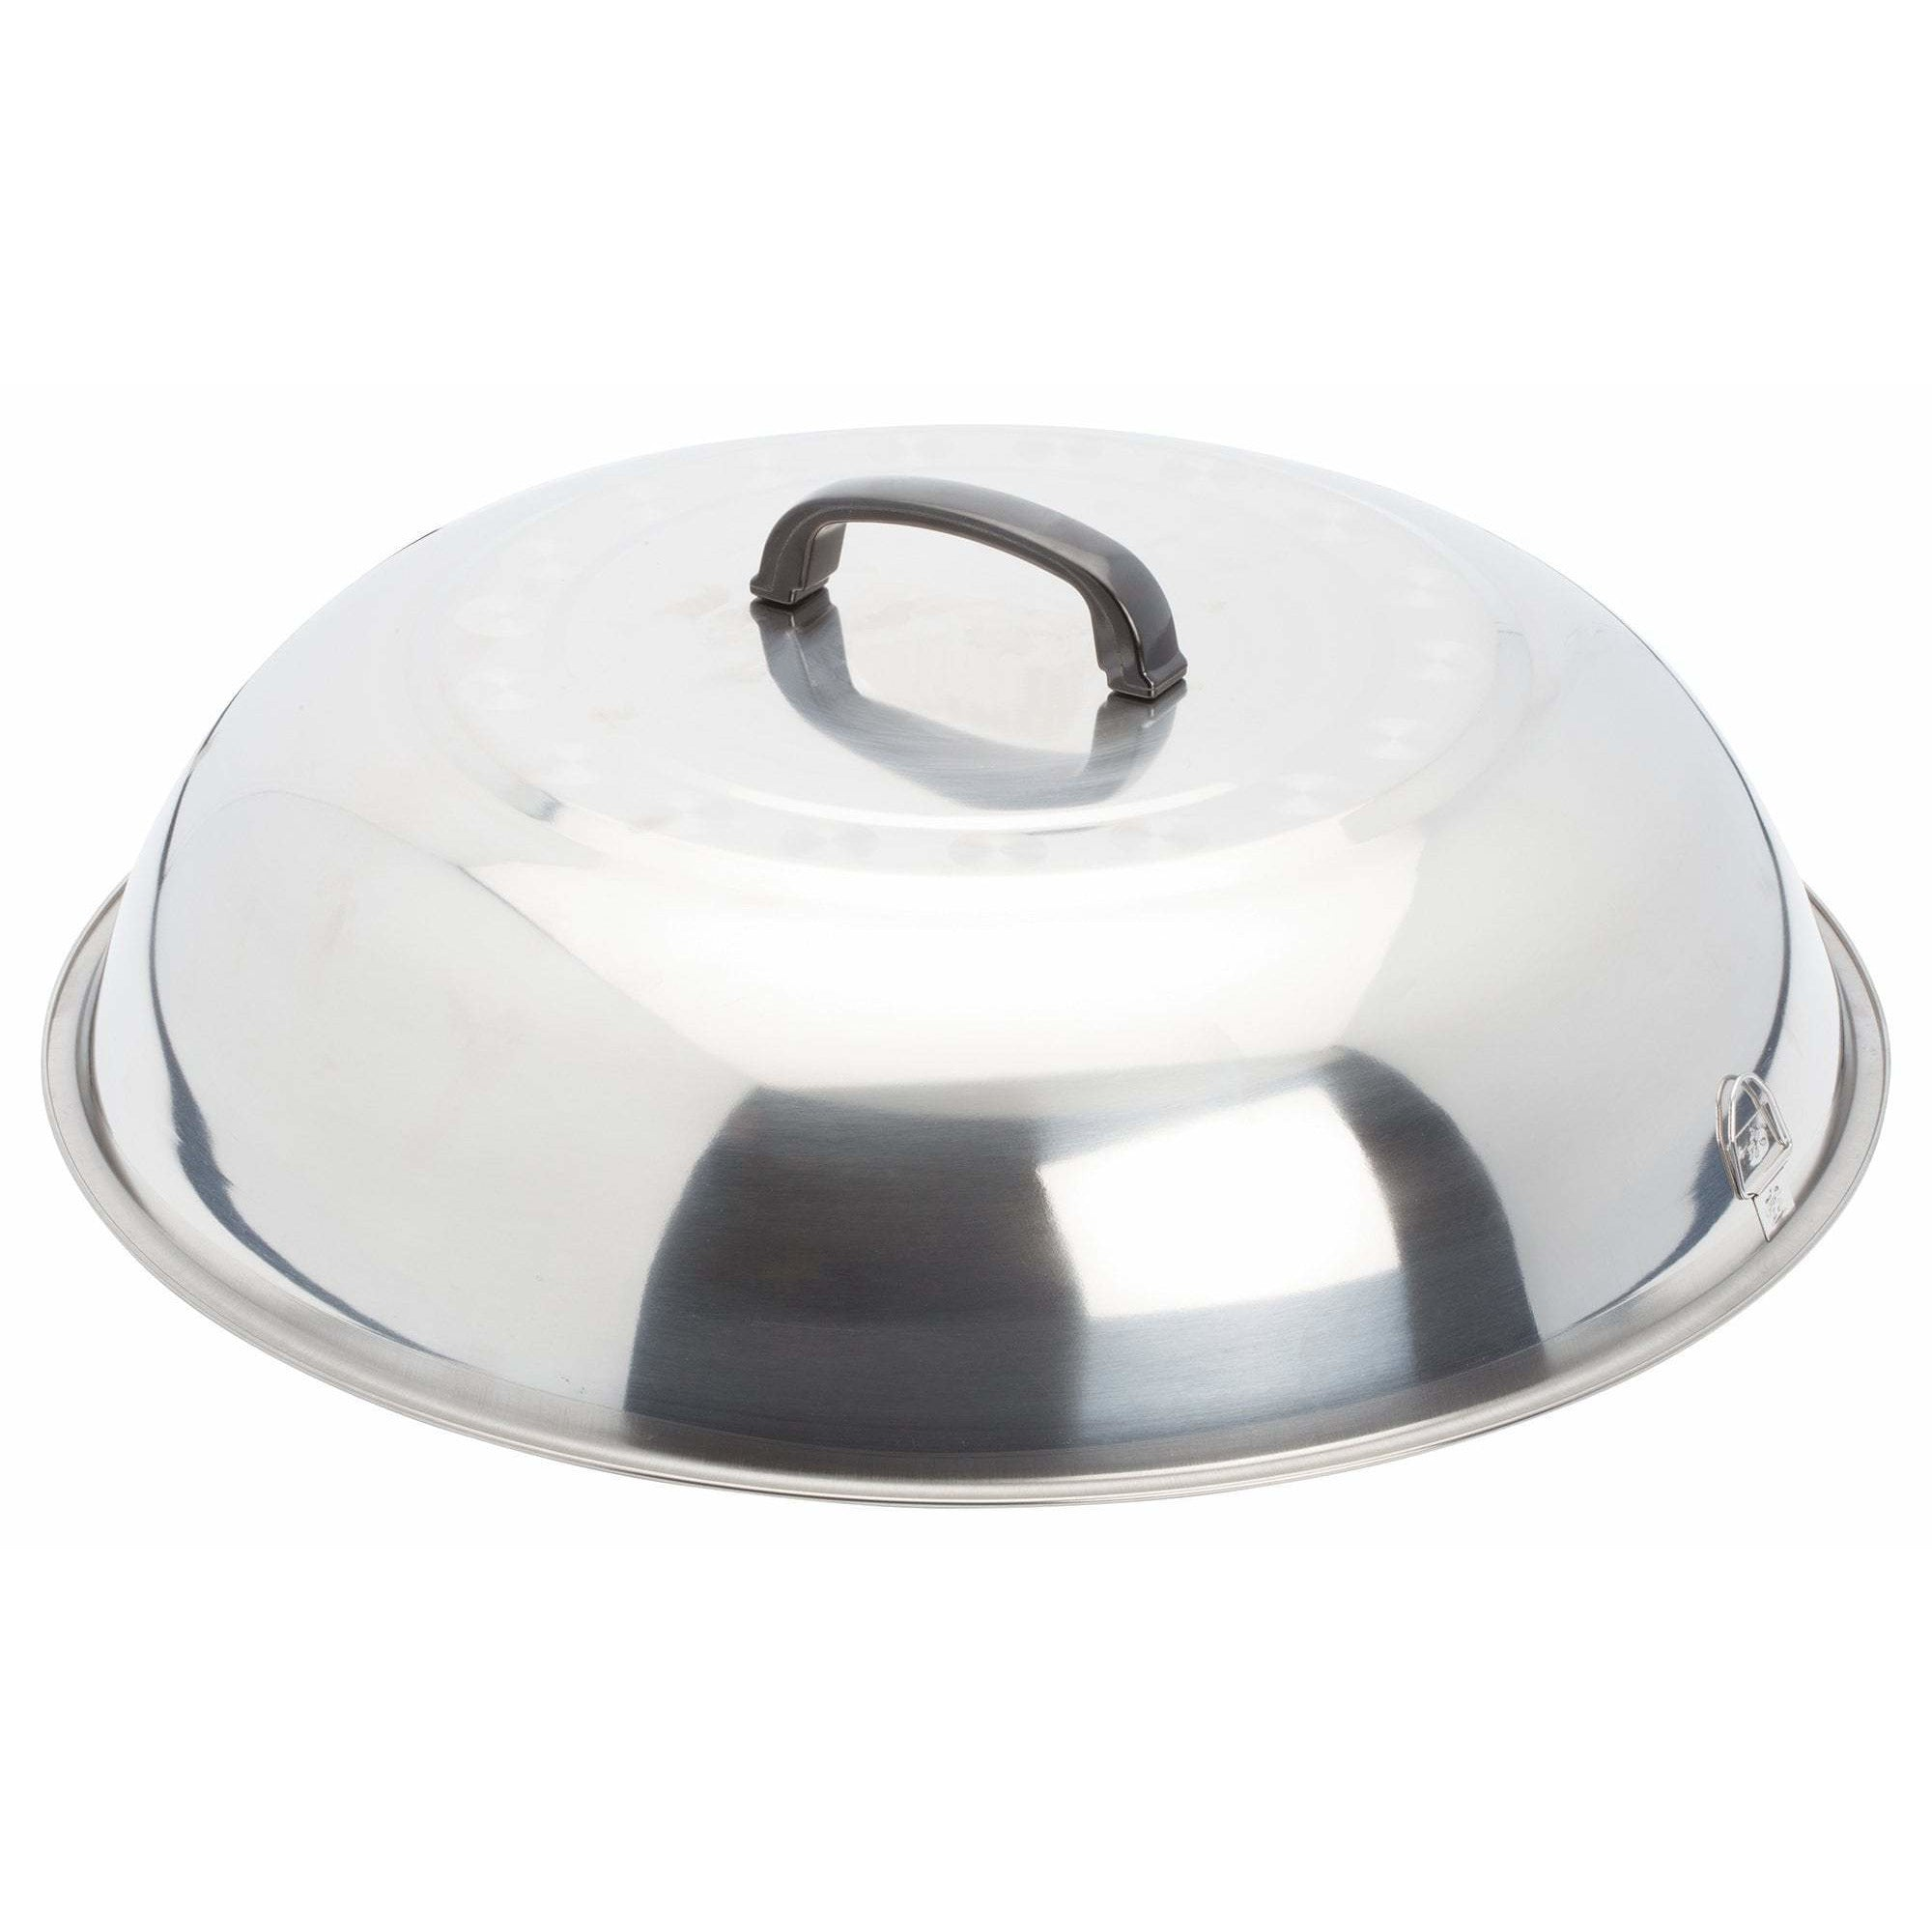 Winco Wkcs 18 17 34 Stainless Steel Wok Cover Cookware